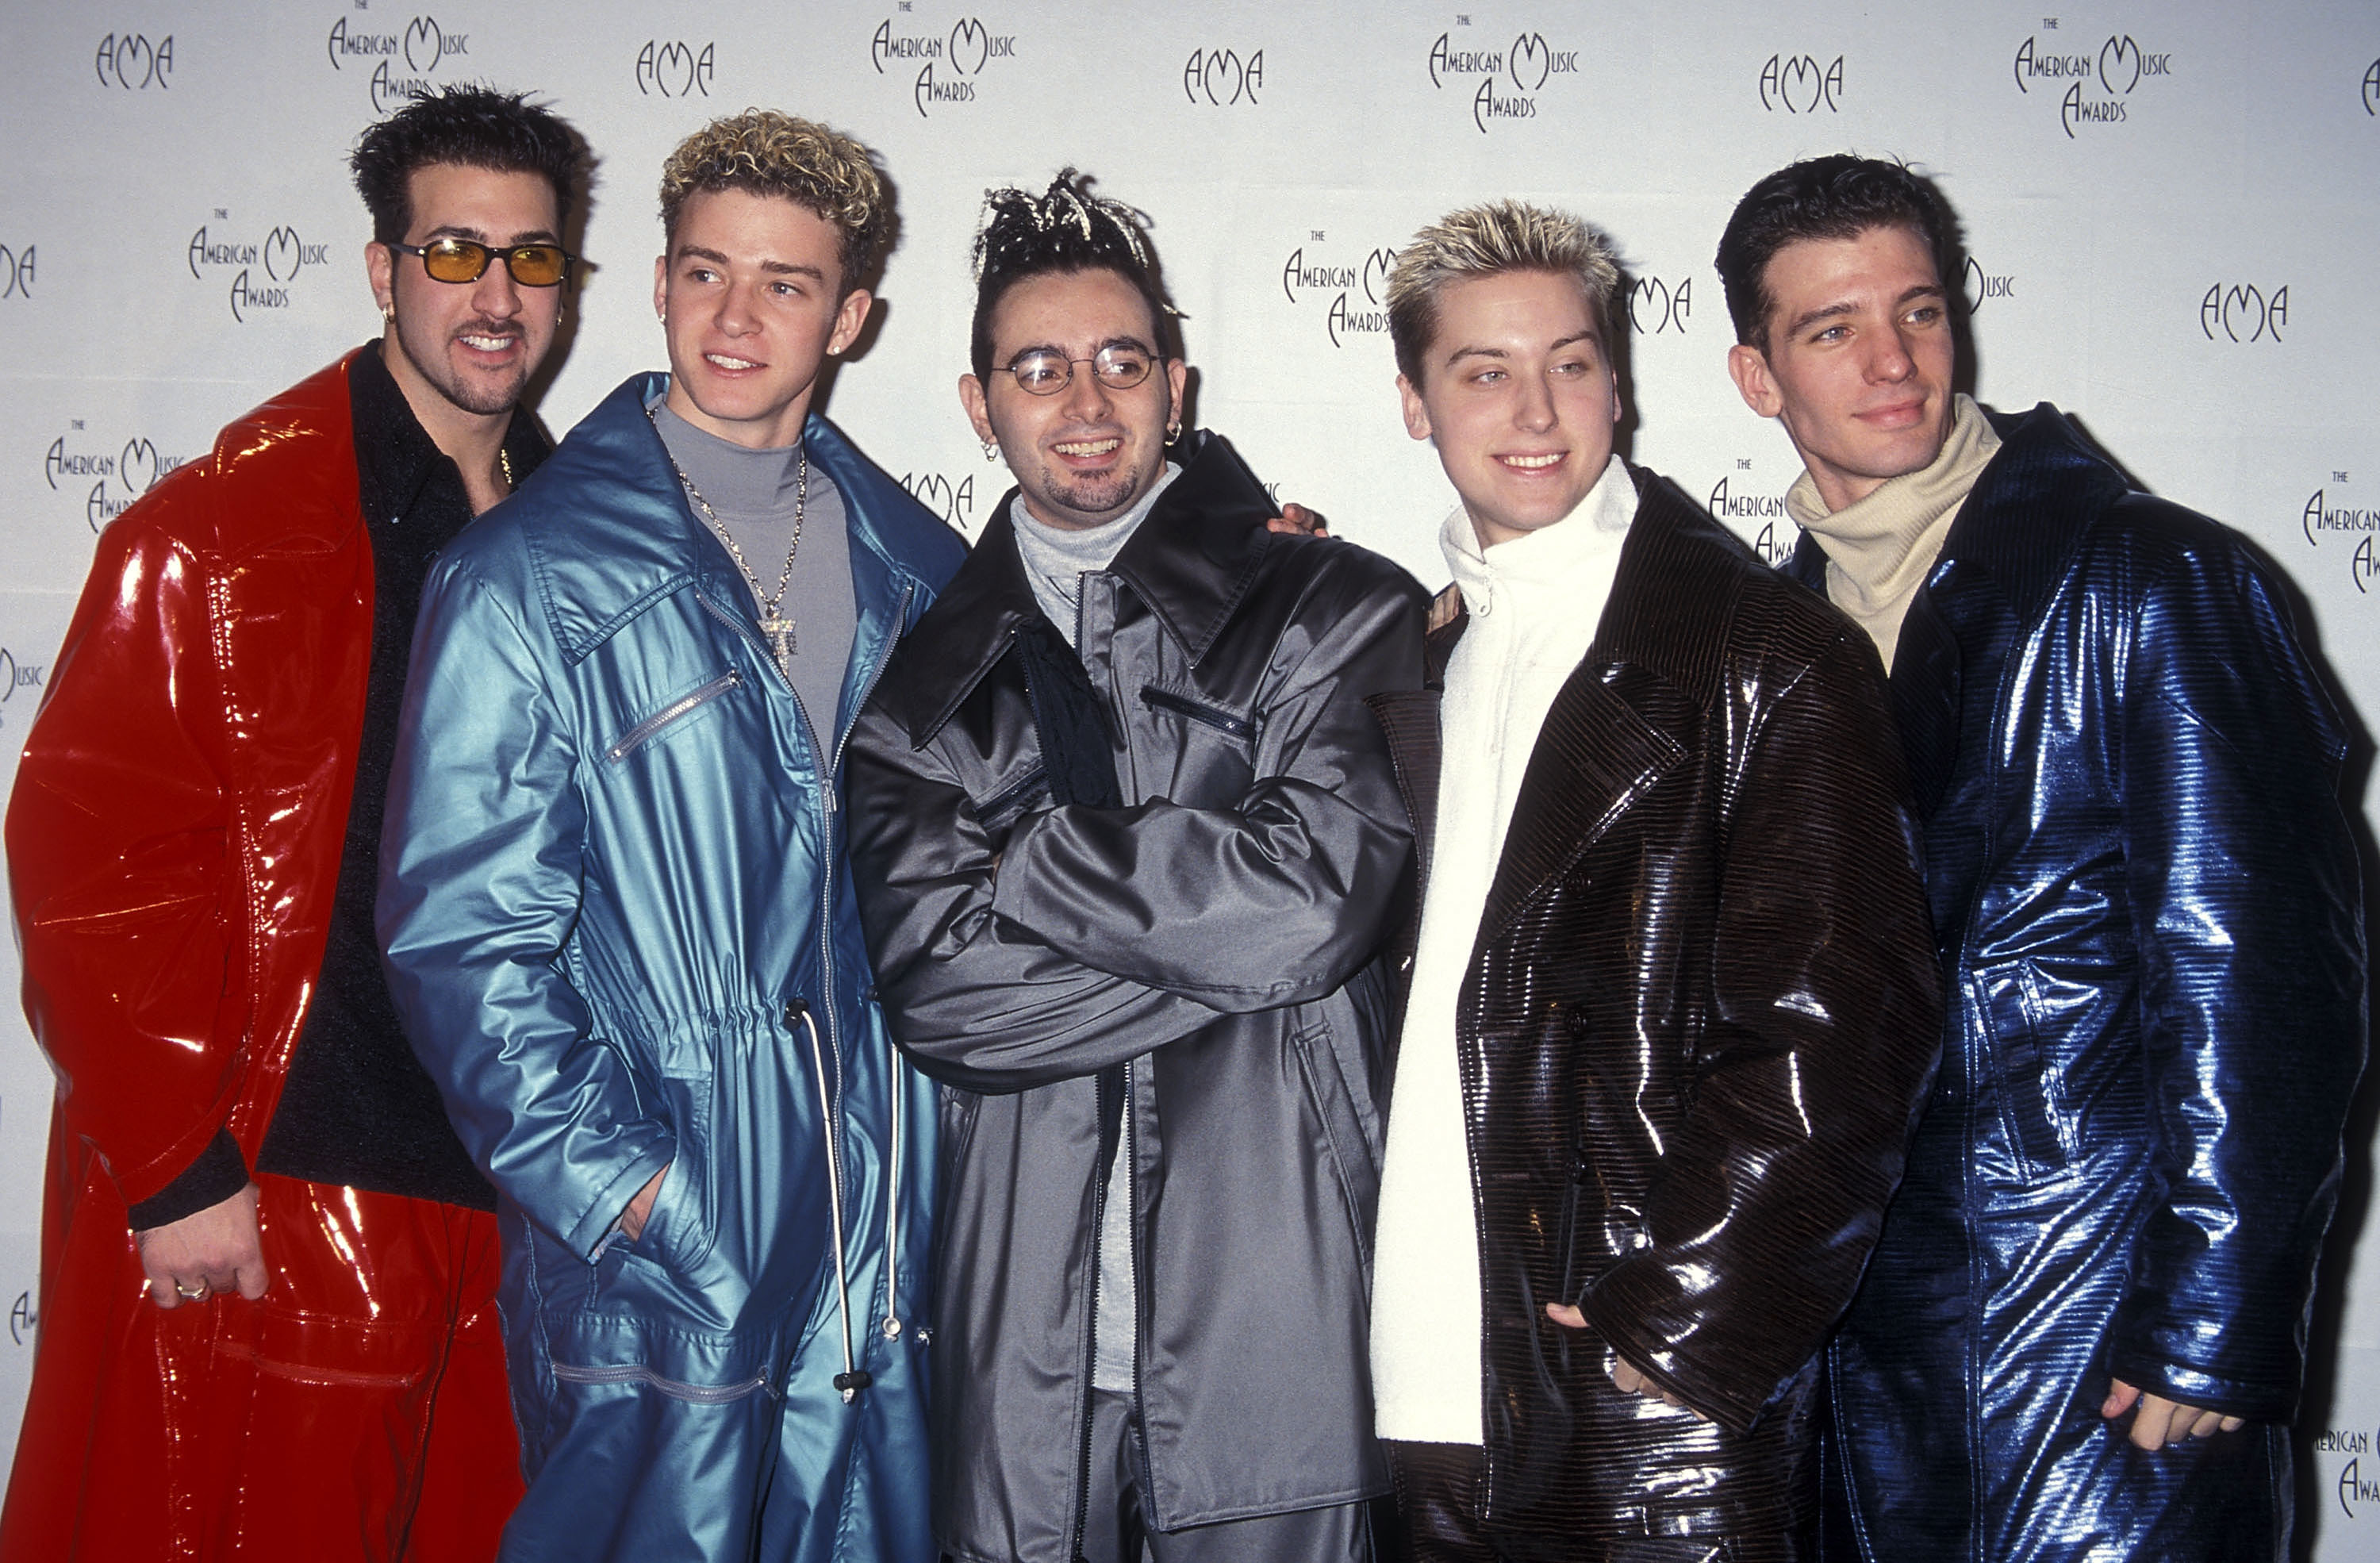 No. 1: He was in *NSYNC